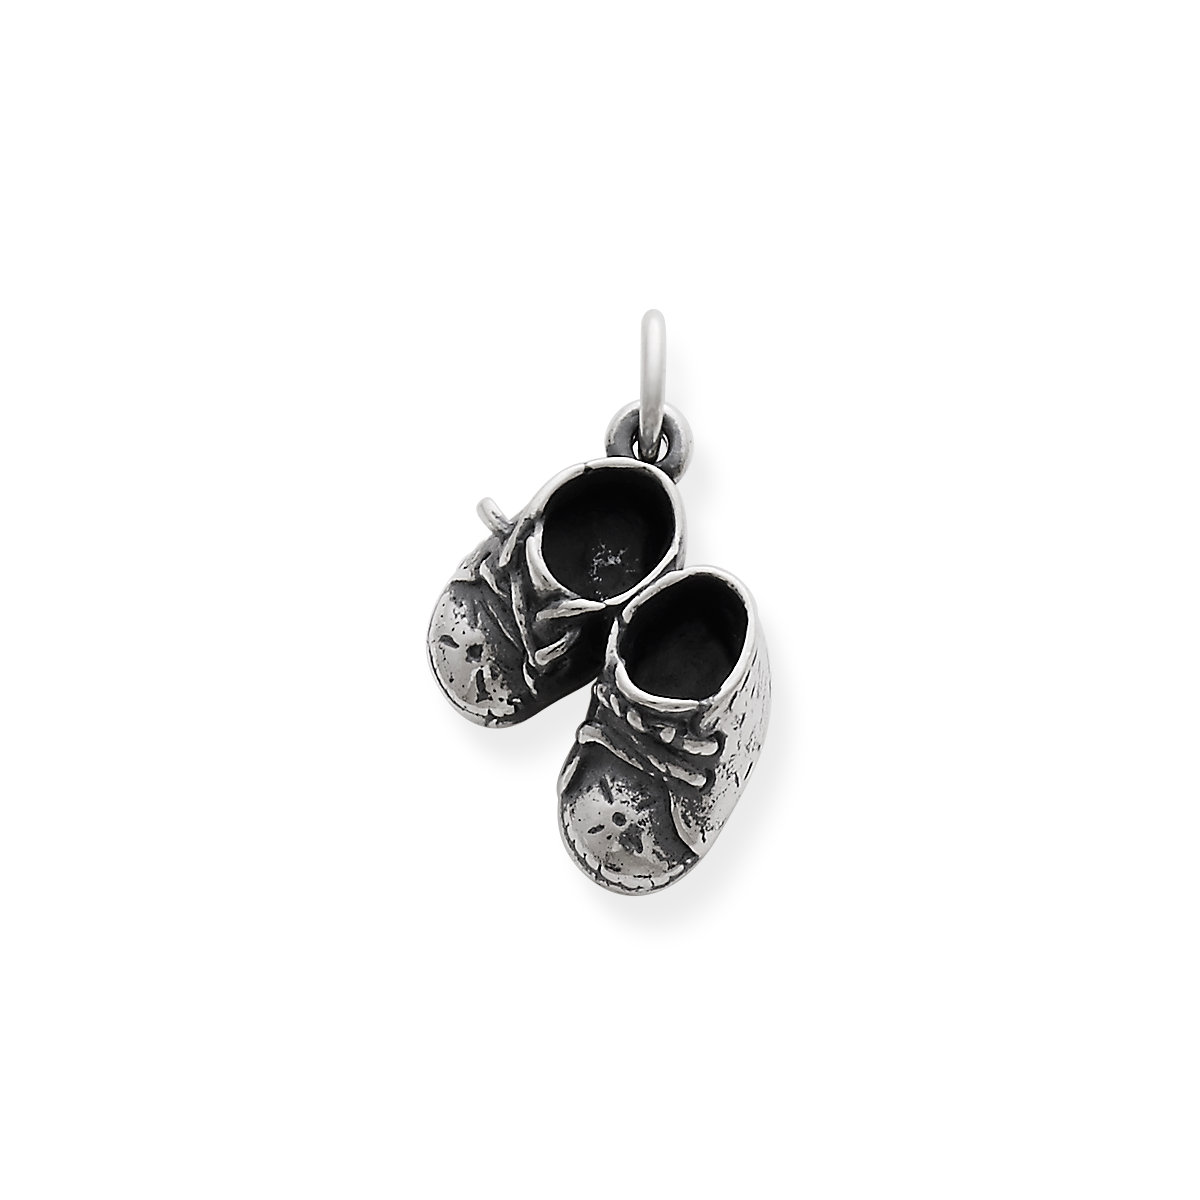 23e39614f Home Boy's Baby Shoes Charm. Previous